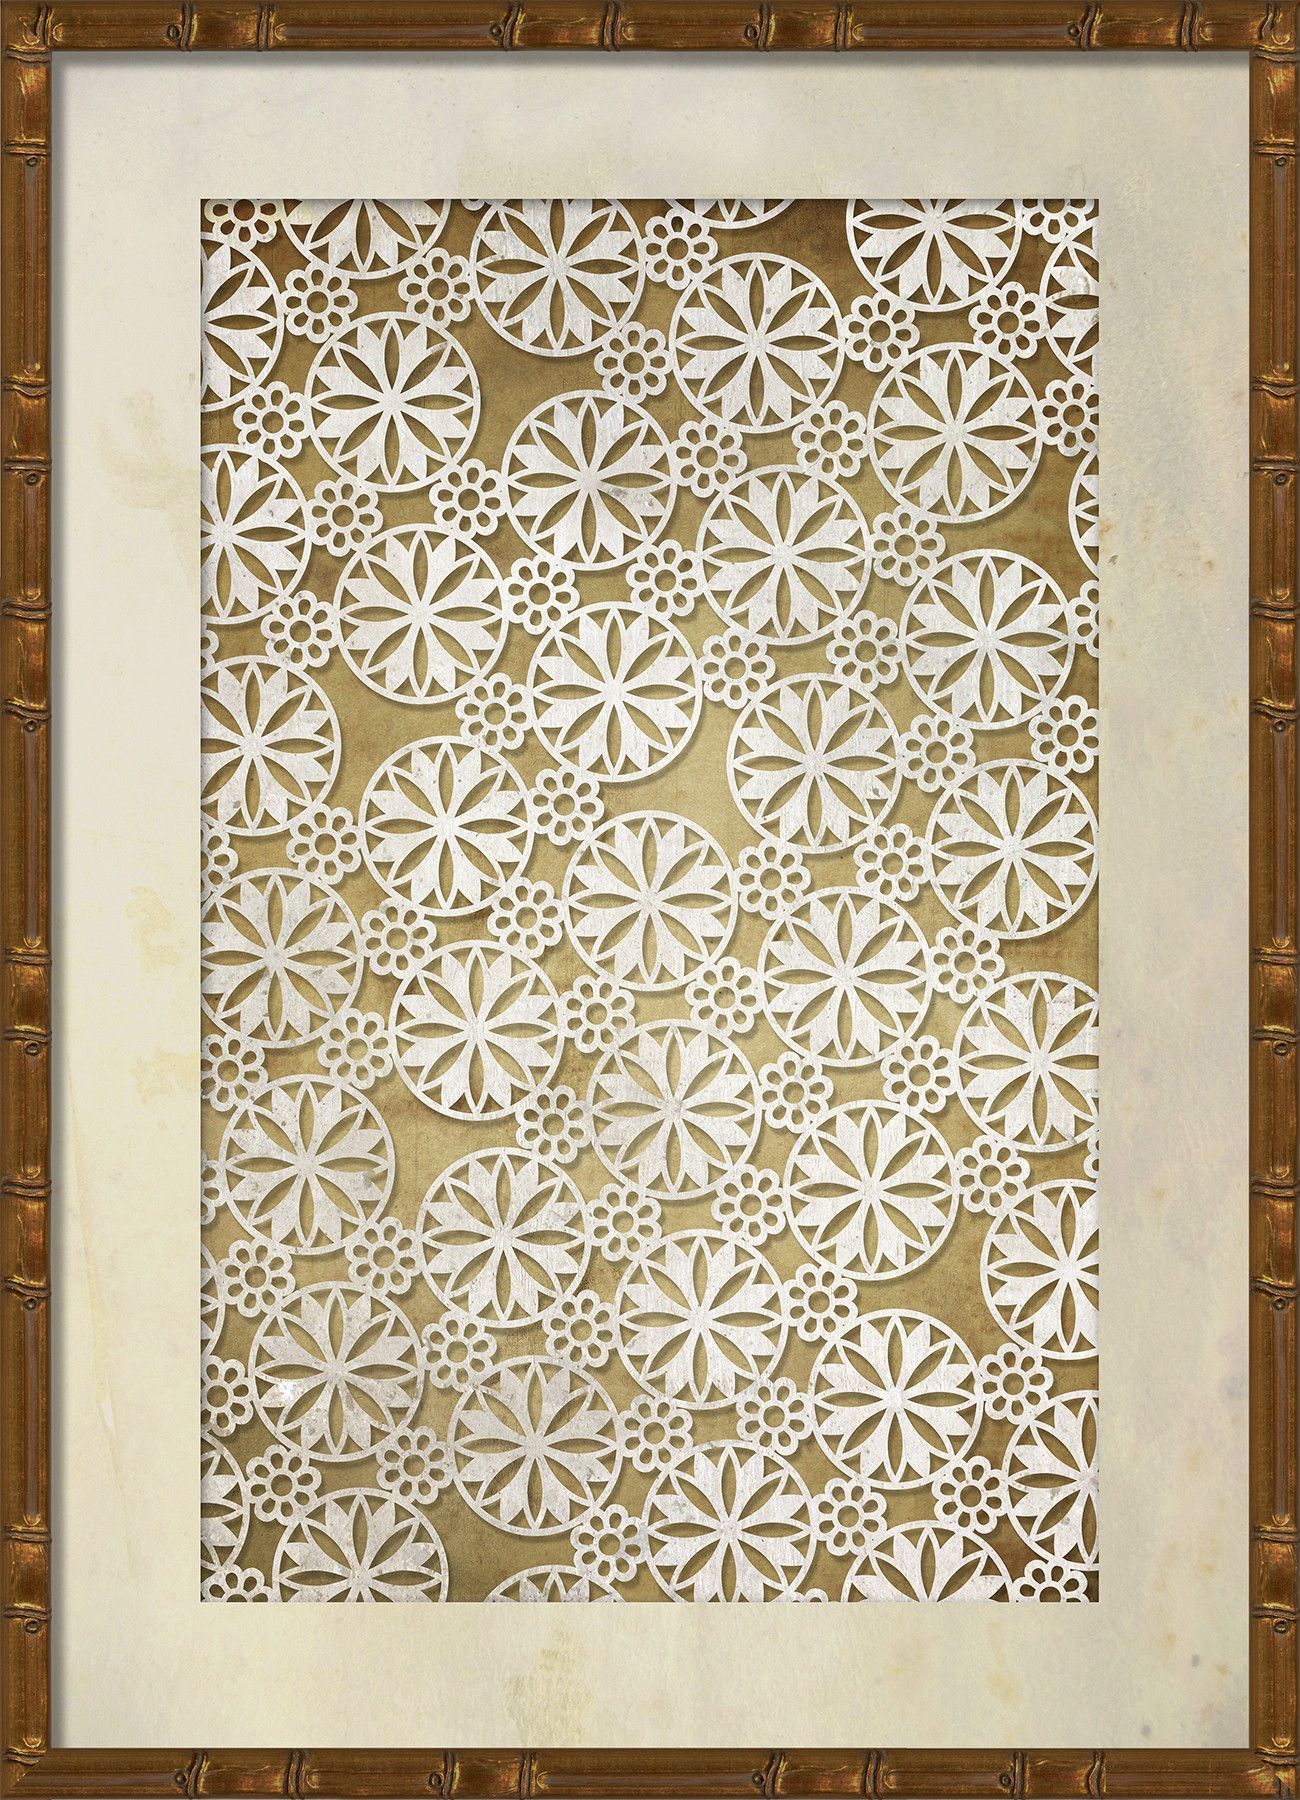 Lace Pattern 4 Framed Graphic Art   Lace patterns, Graphic art and ...